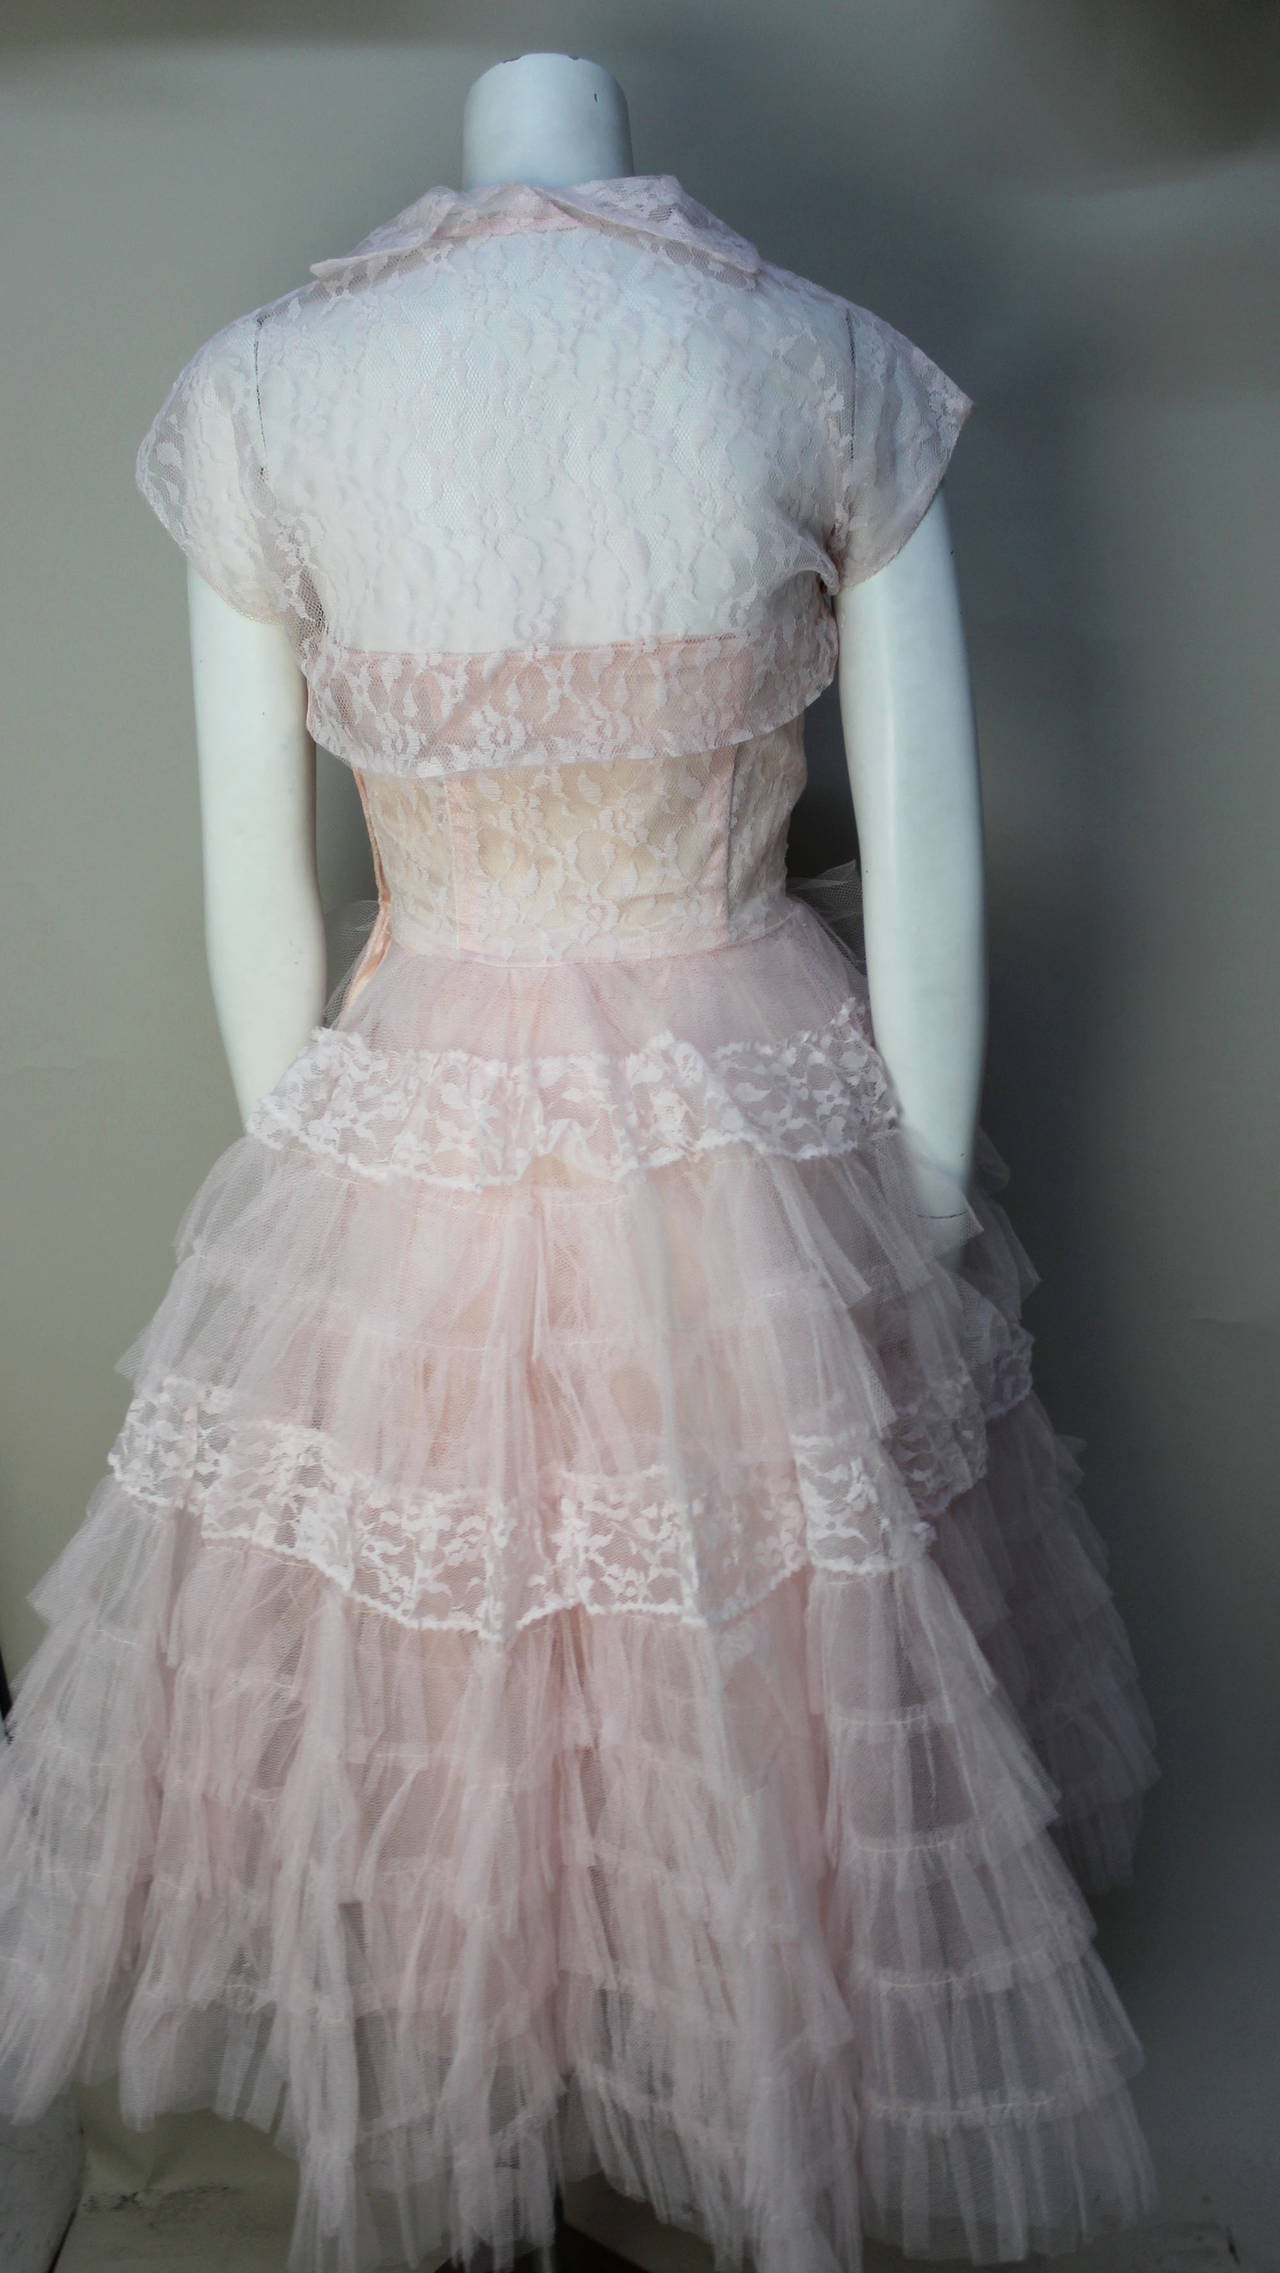 Stunning Never Worn 1950s Pink Tulle Evening Dress with Lace Bolero 6